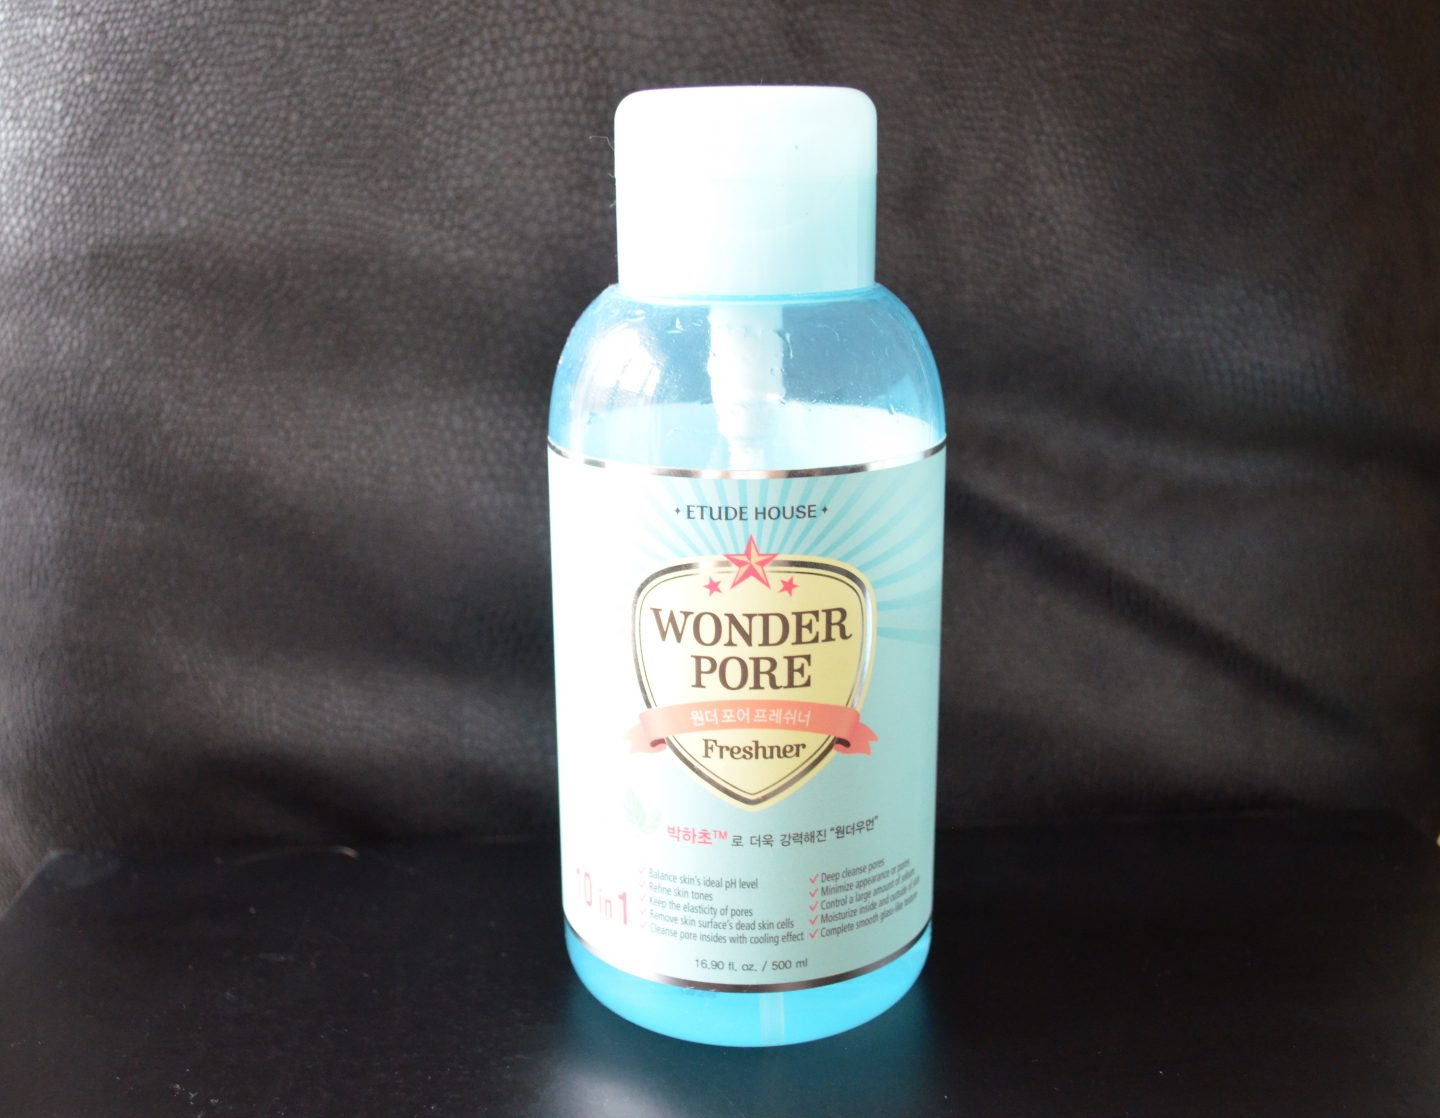 REVIEW: Wonder Pore Freshner